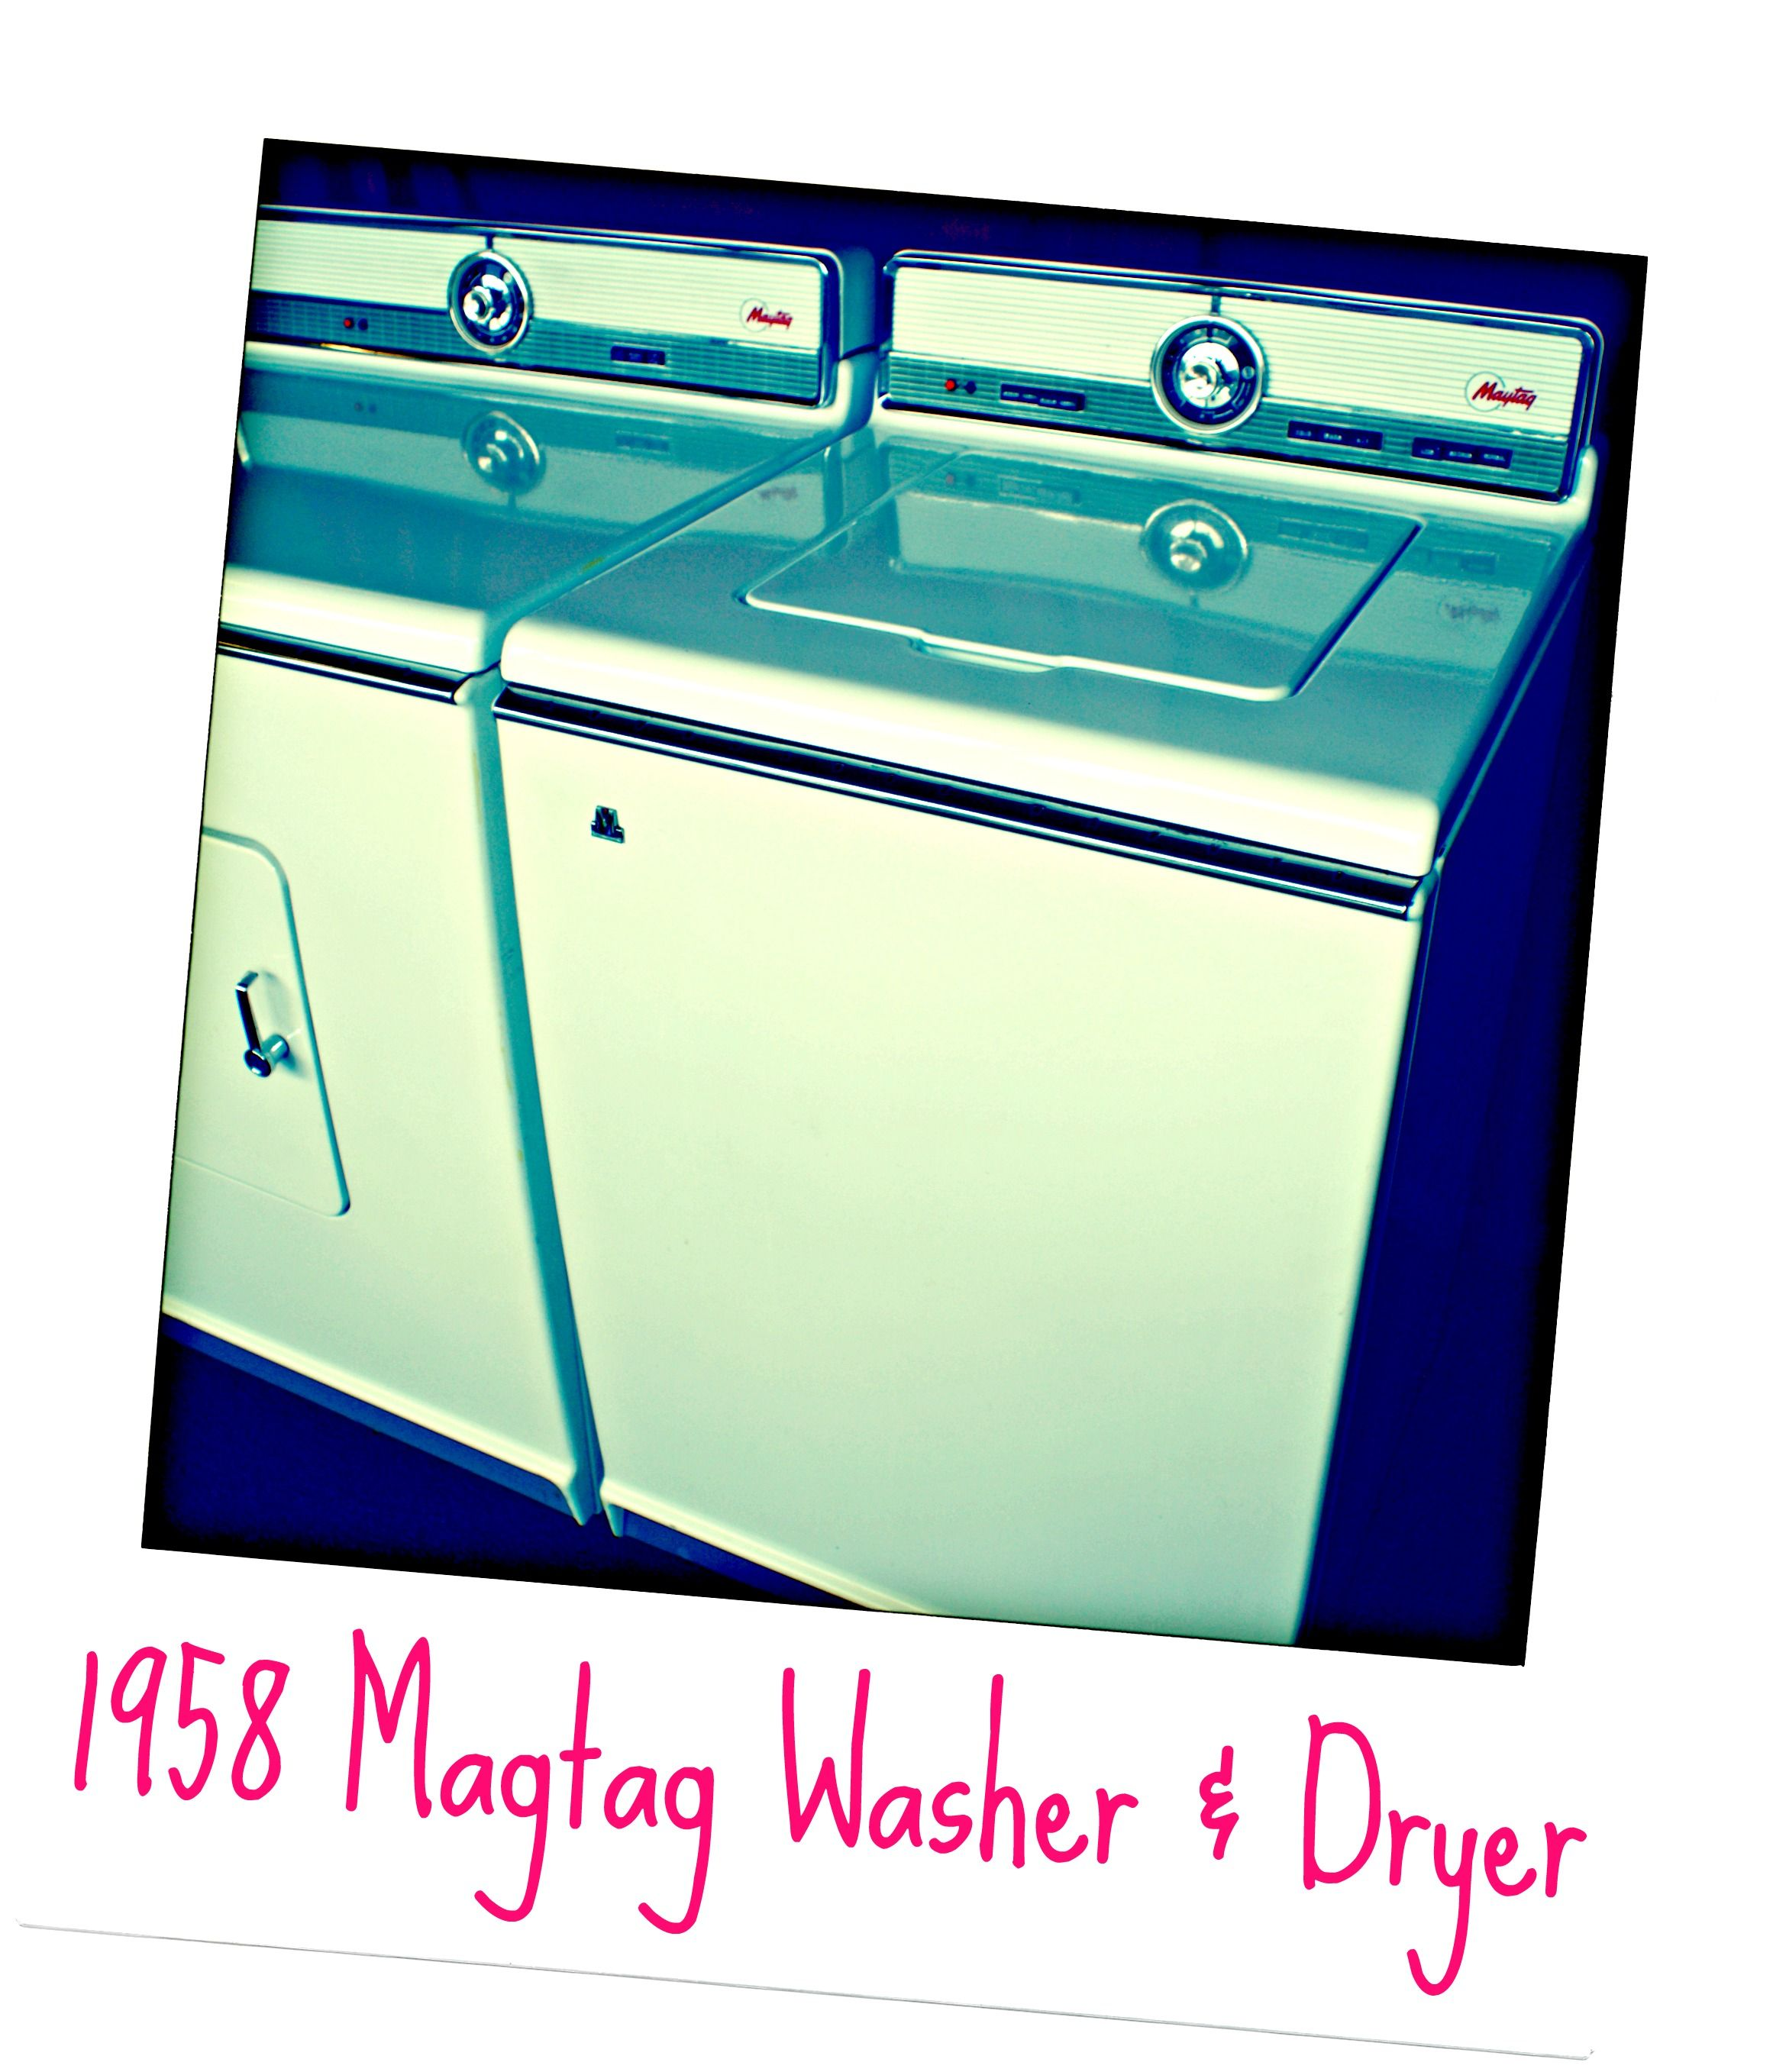 Pin By Castle Rock Mercantile On Things We Have Sold In 2018 Maytag Washer Parts Diagram Group Picture Image Tag 1958 Amp Dryer Over 50 Years Old And They Look Like New